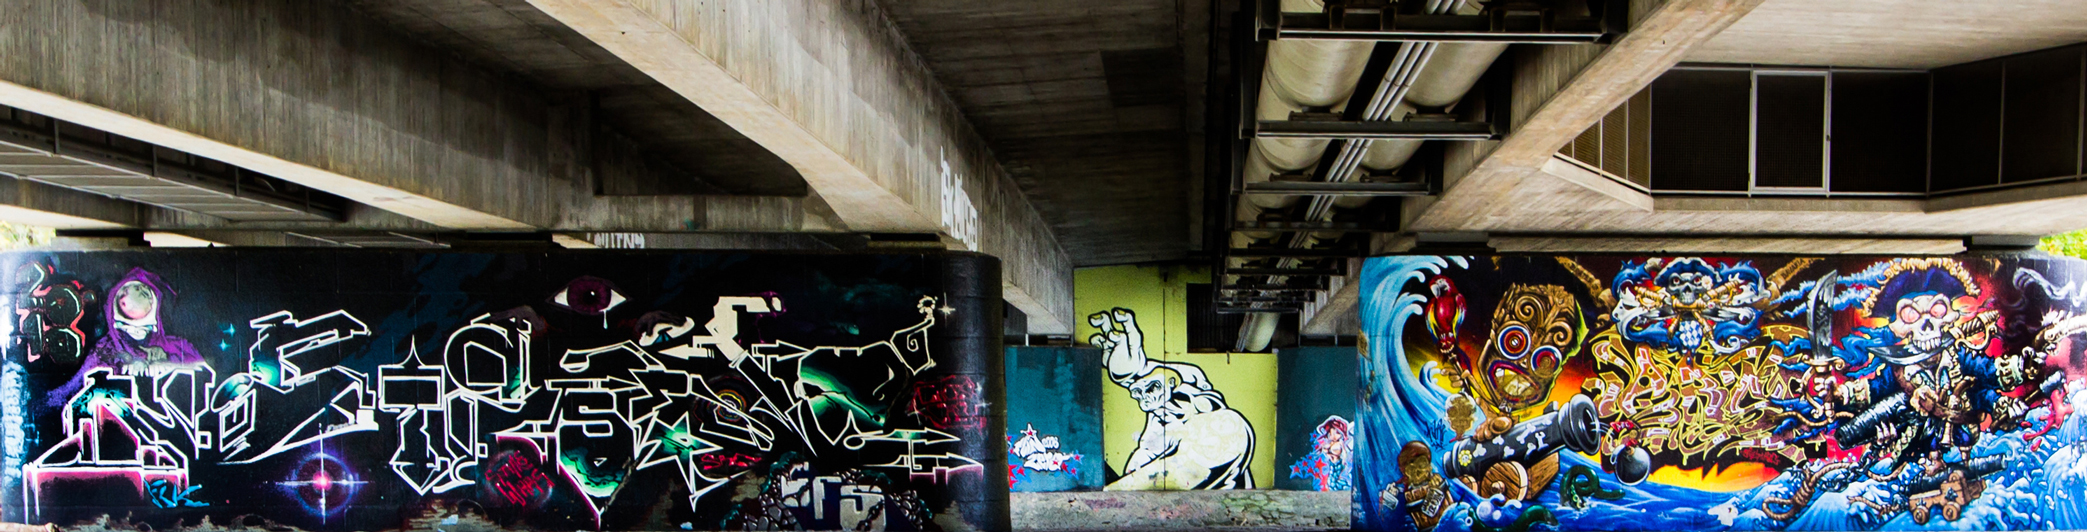 klein_header_graffitti_Fotolia_65787860_Subscription_Monthly_L